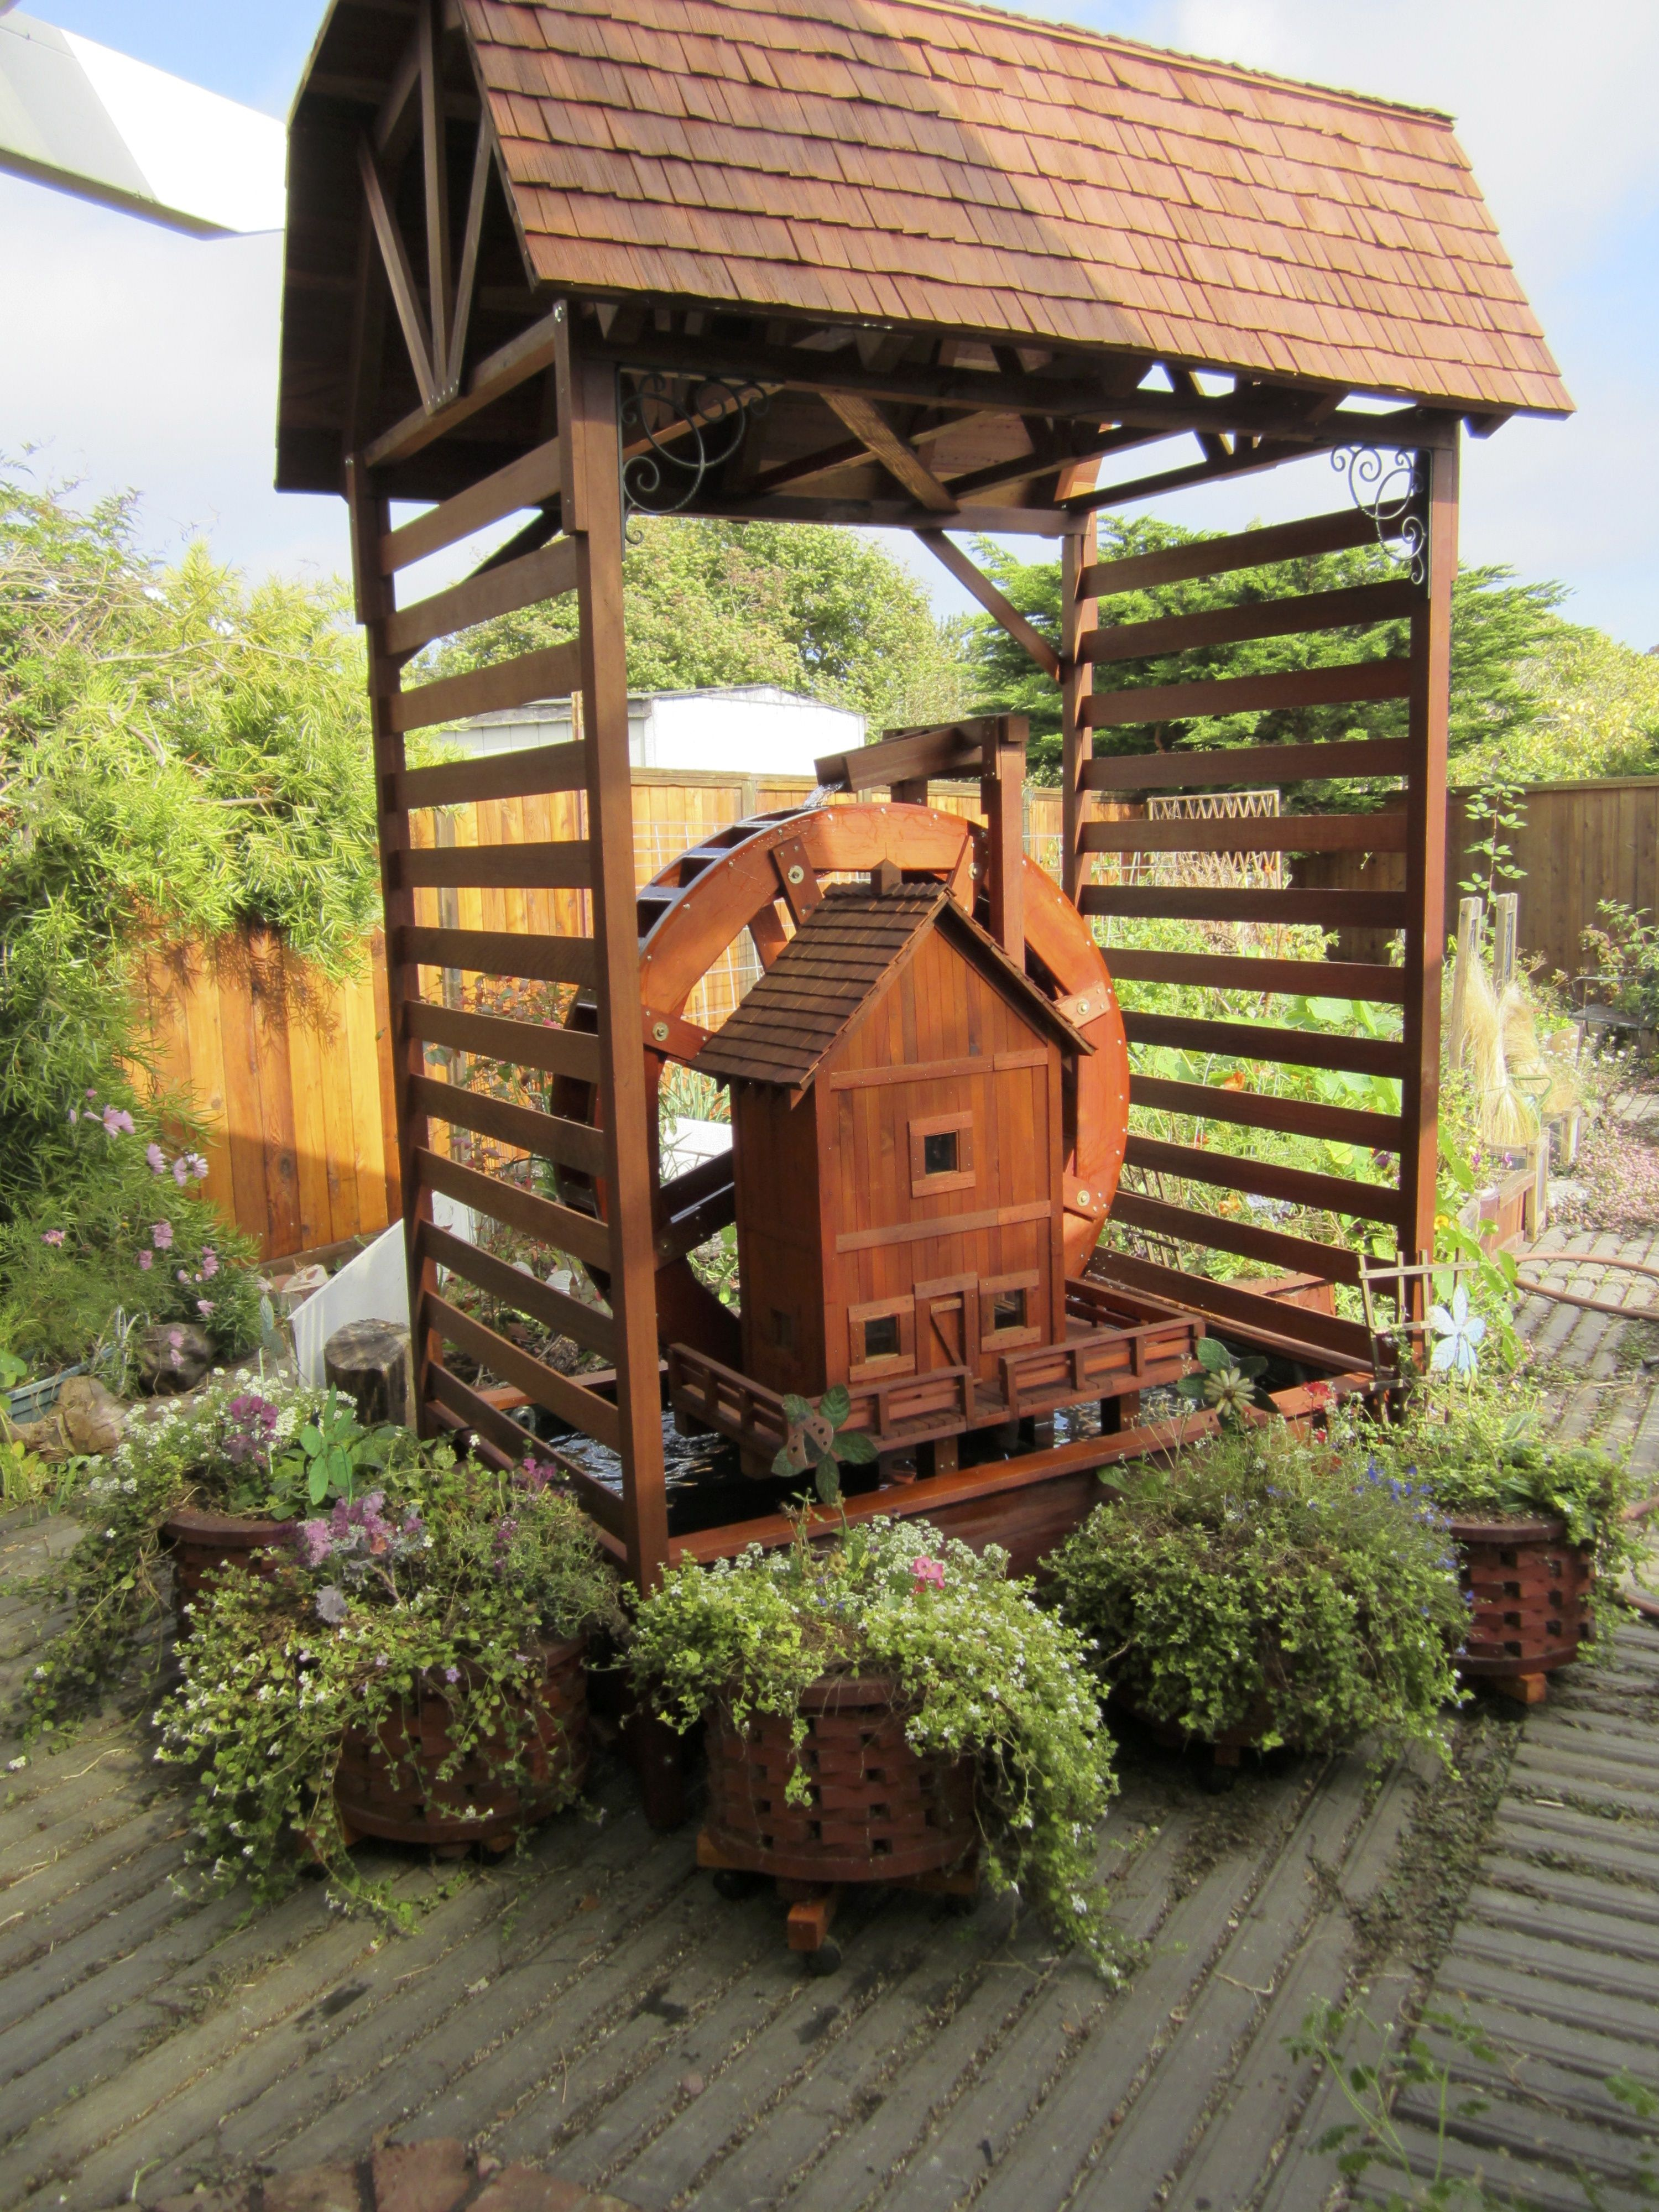 Water Wheel With Pump House   Self Contained For Garden